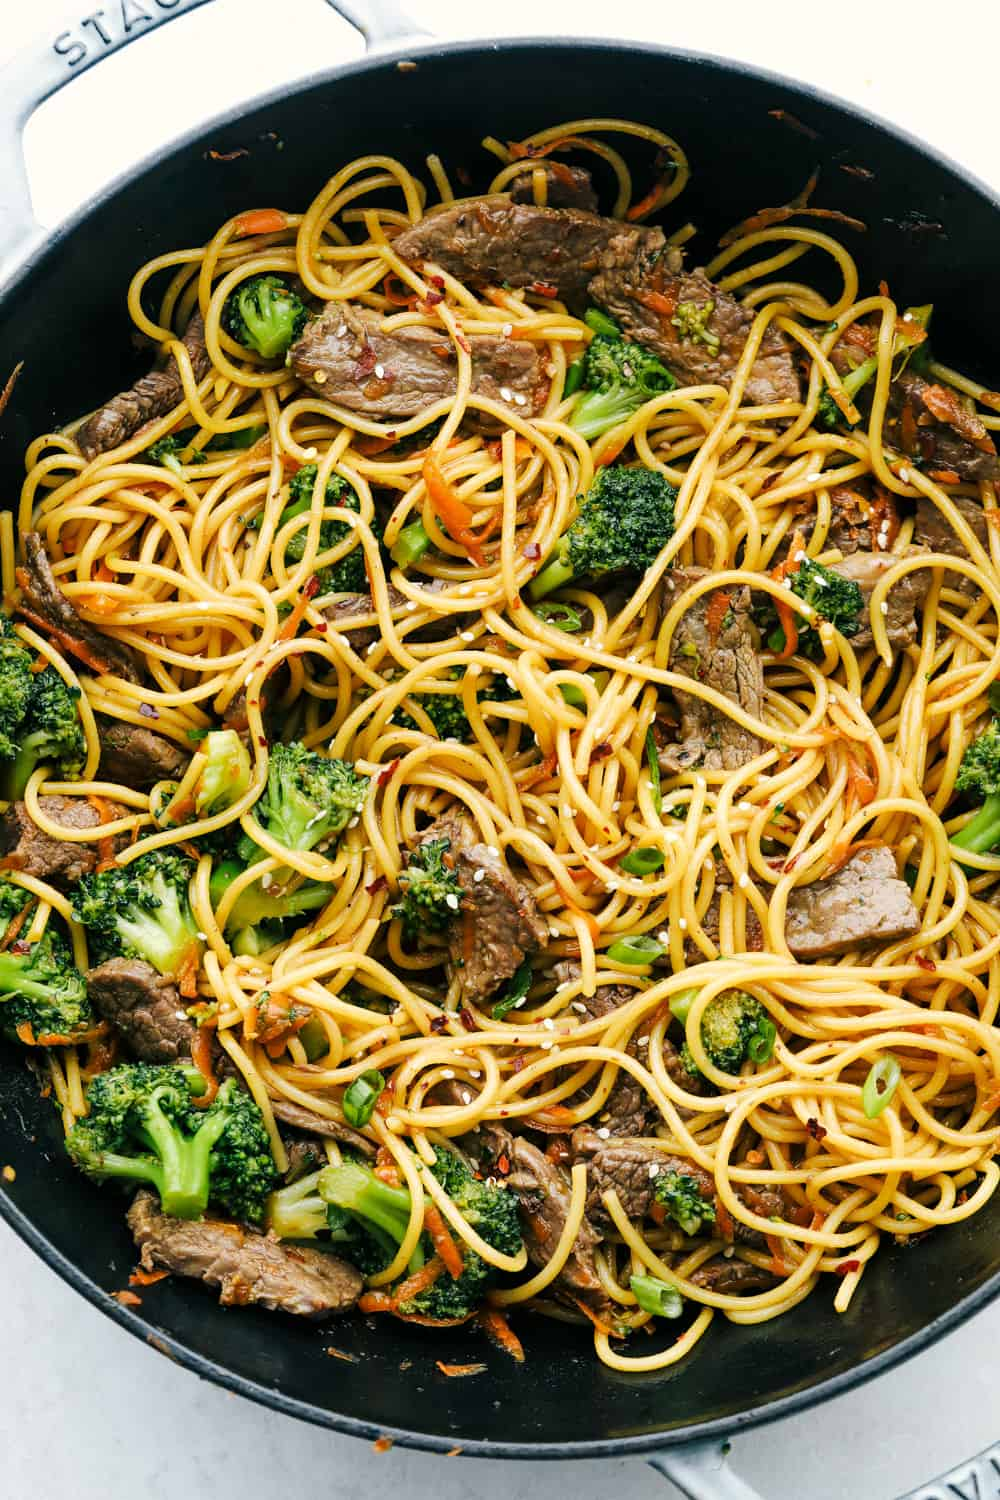 Beef and broccoli lo mein in a skillet.